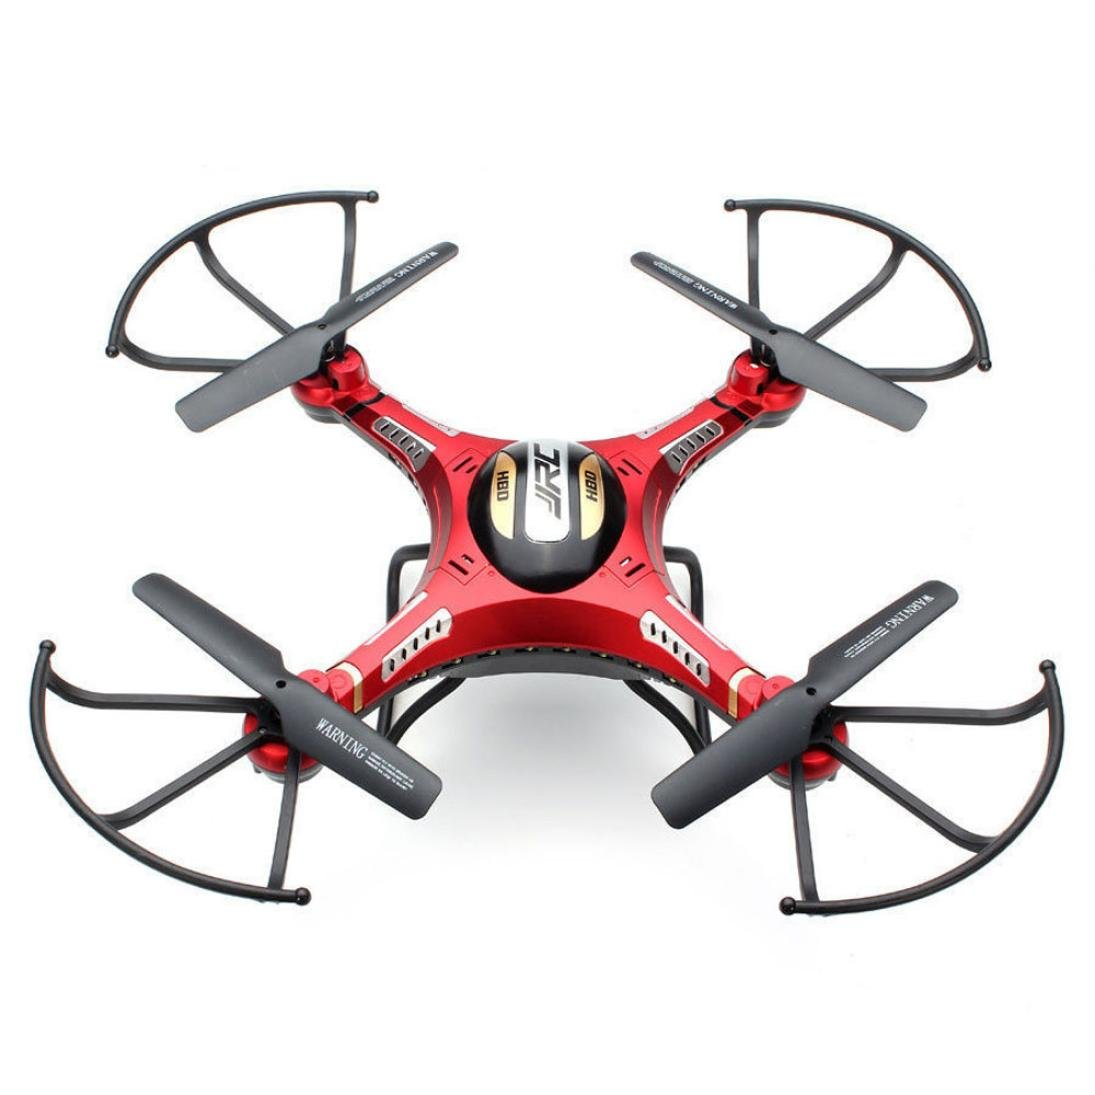 Iusun Upgrade JJRC H8D 4CH 6 Axis 5.8G FPV RC Quadcopter Drone HD Camera + Monitor+ 4 Battery (Red)